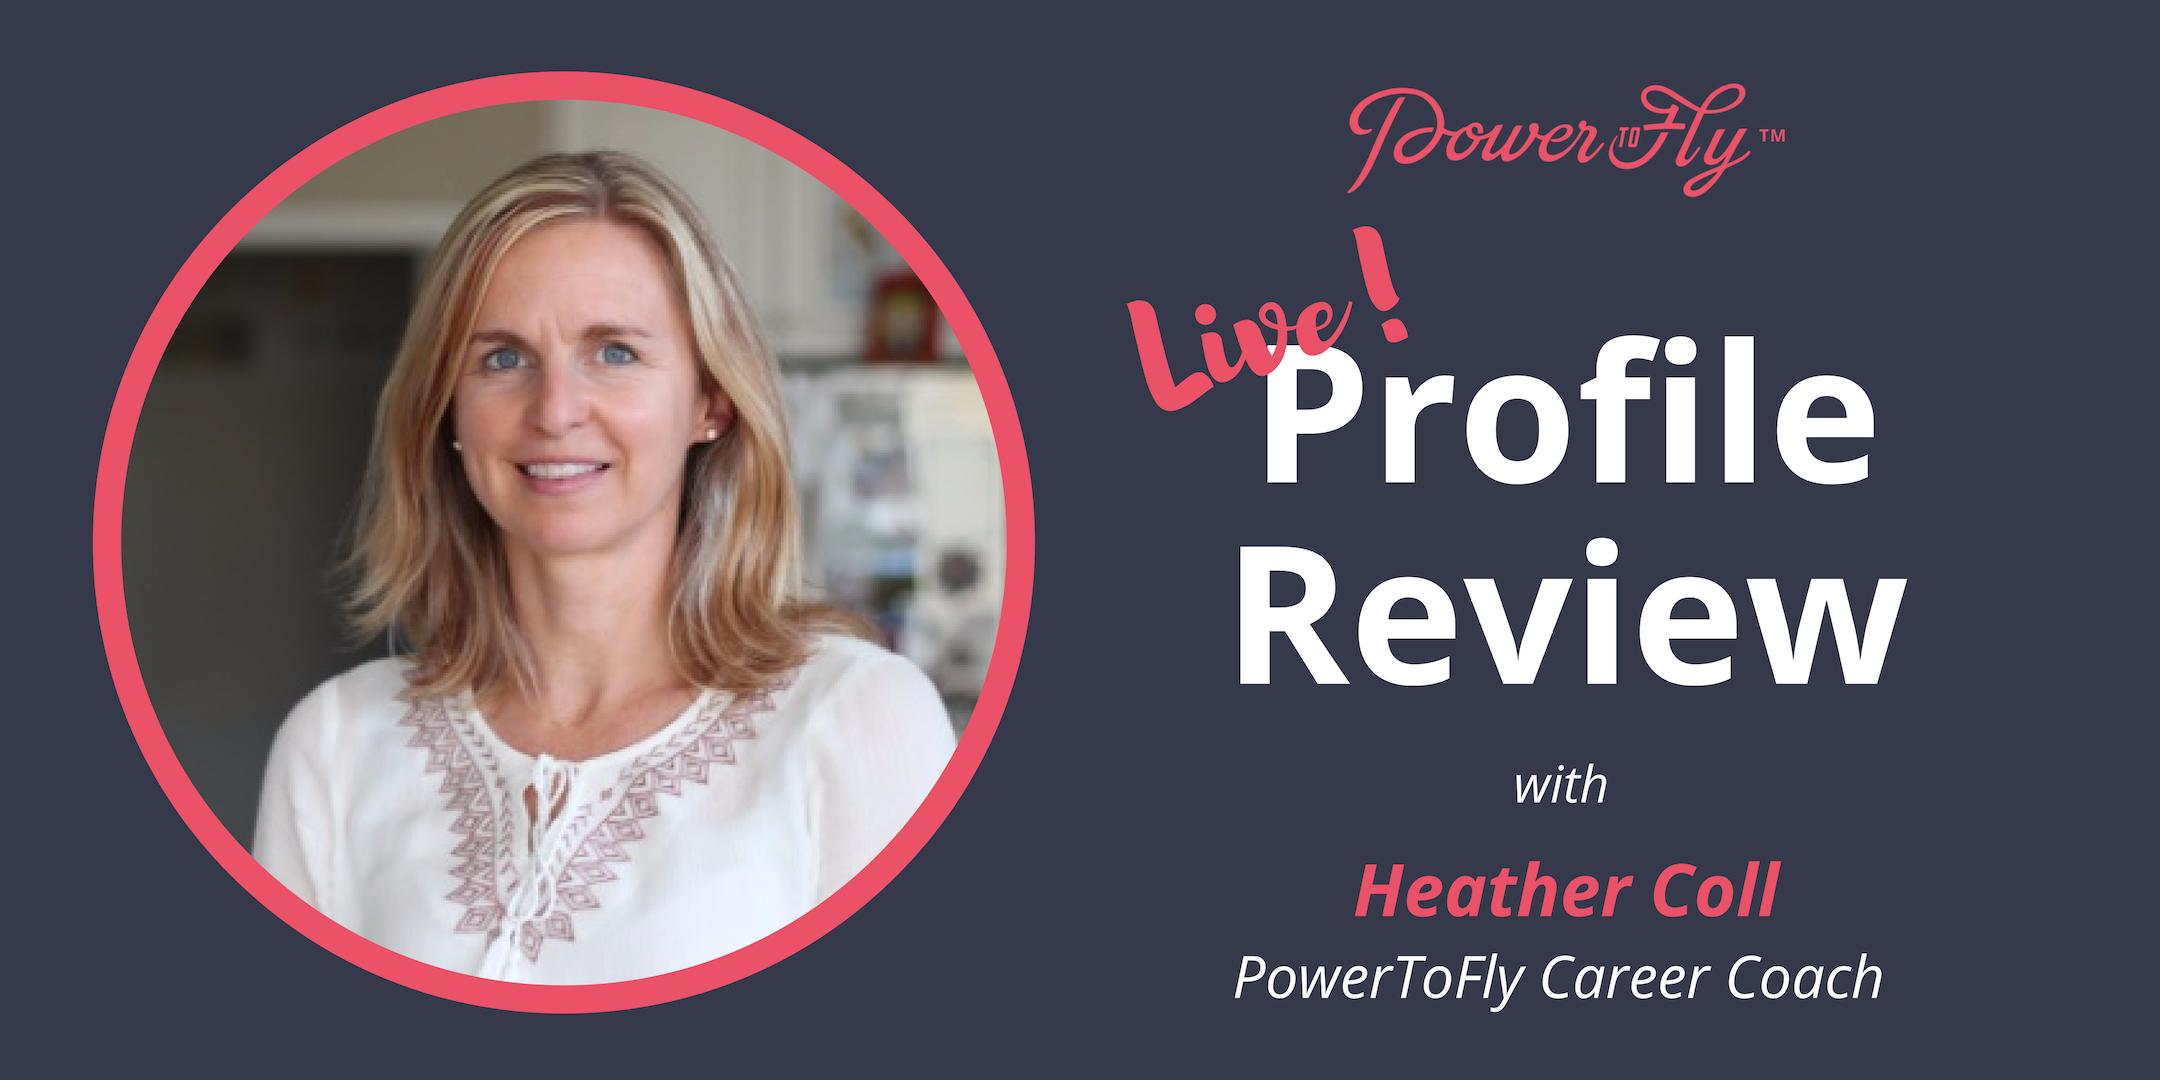 *LIVE* Profile Review With PowerToFly Career Coach 5/30